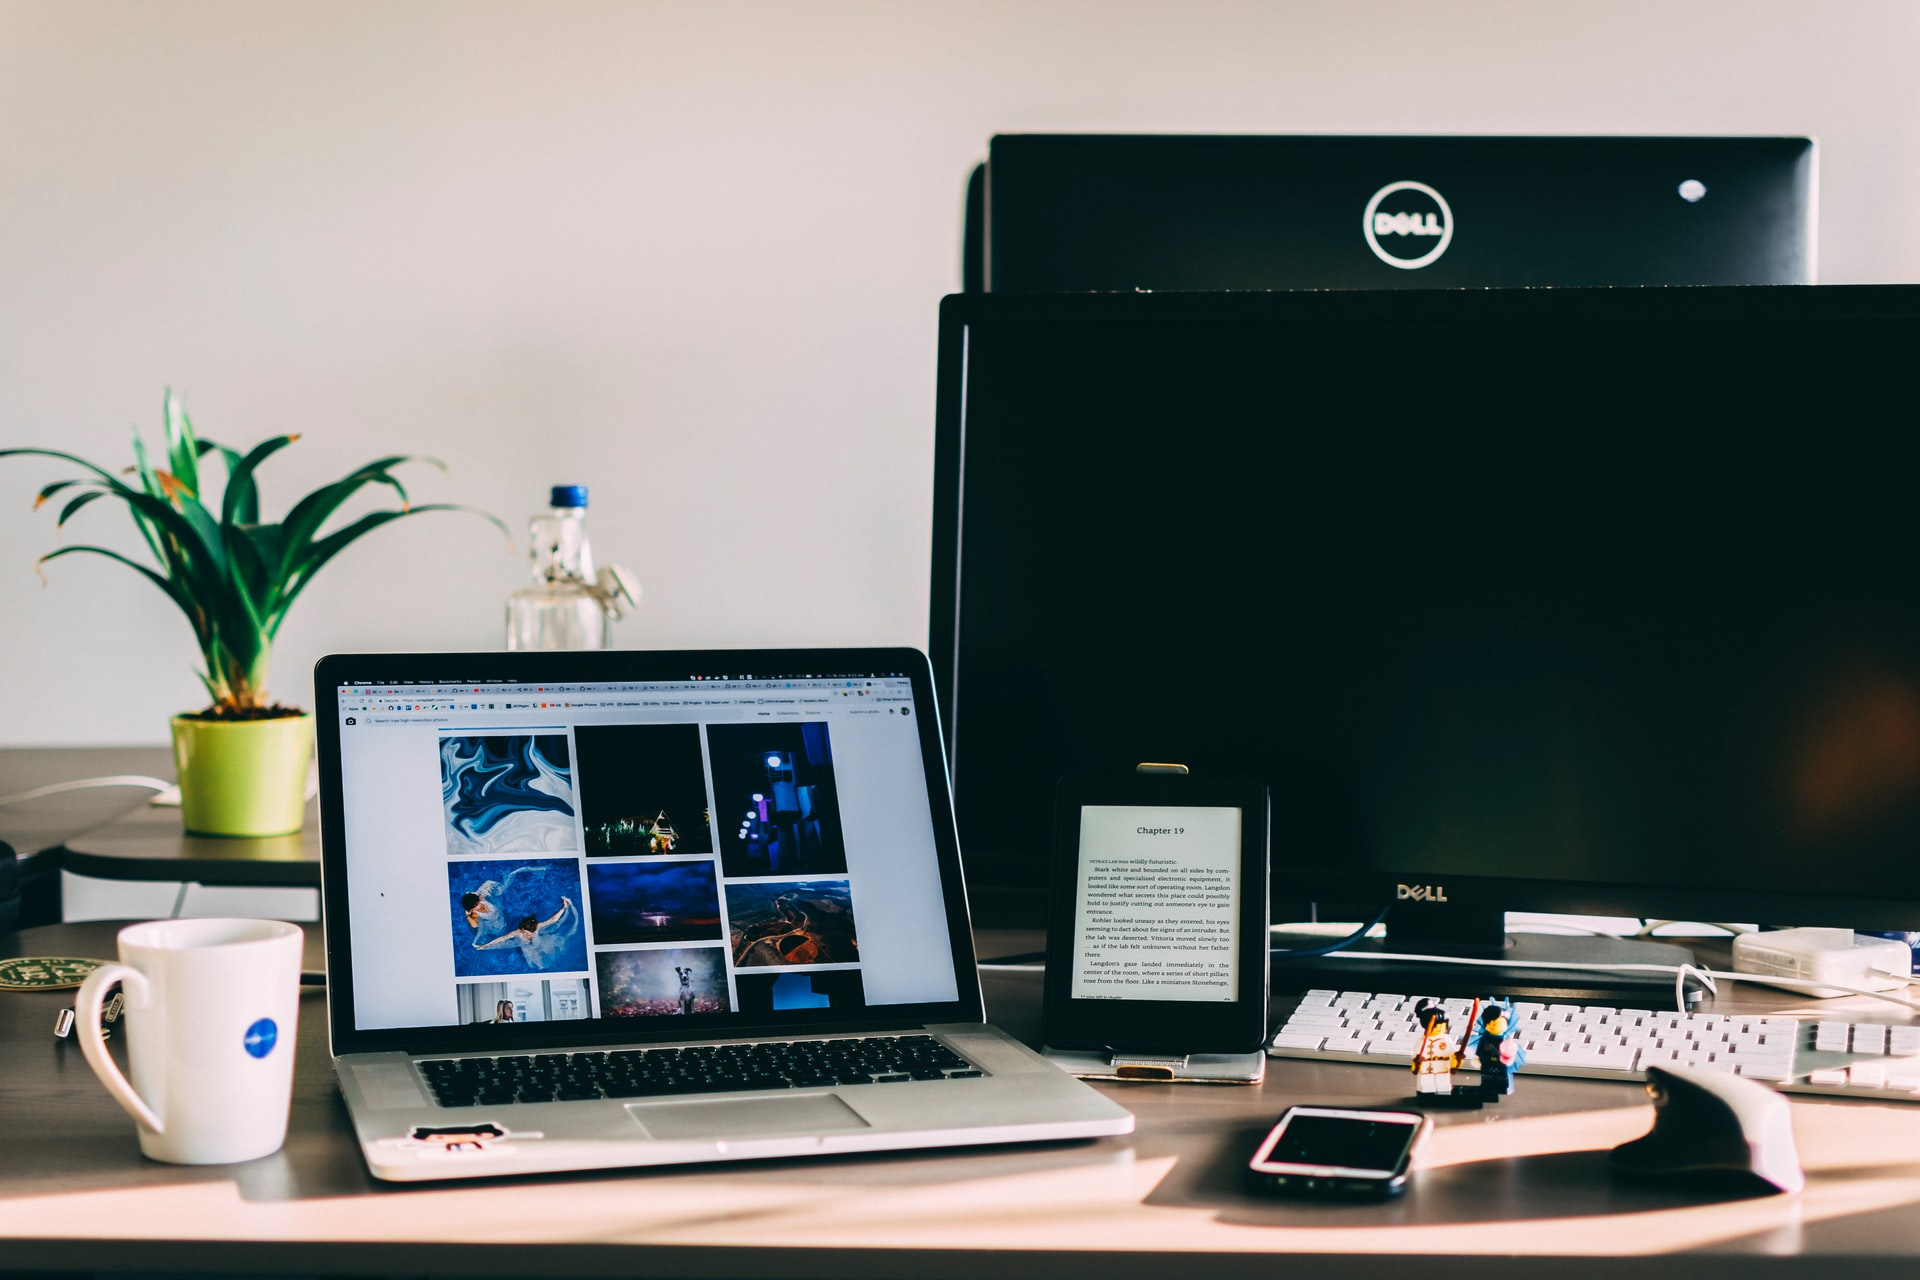 Laptop vs PC – Which One Is Best For Working?